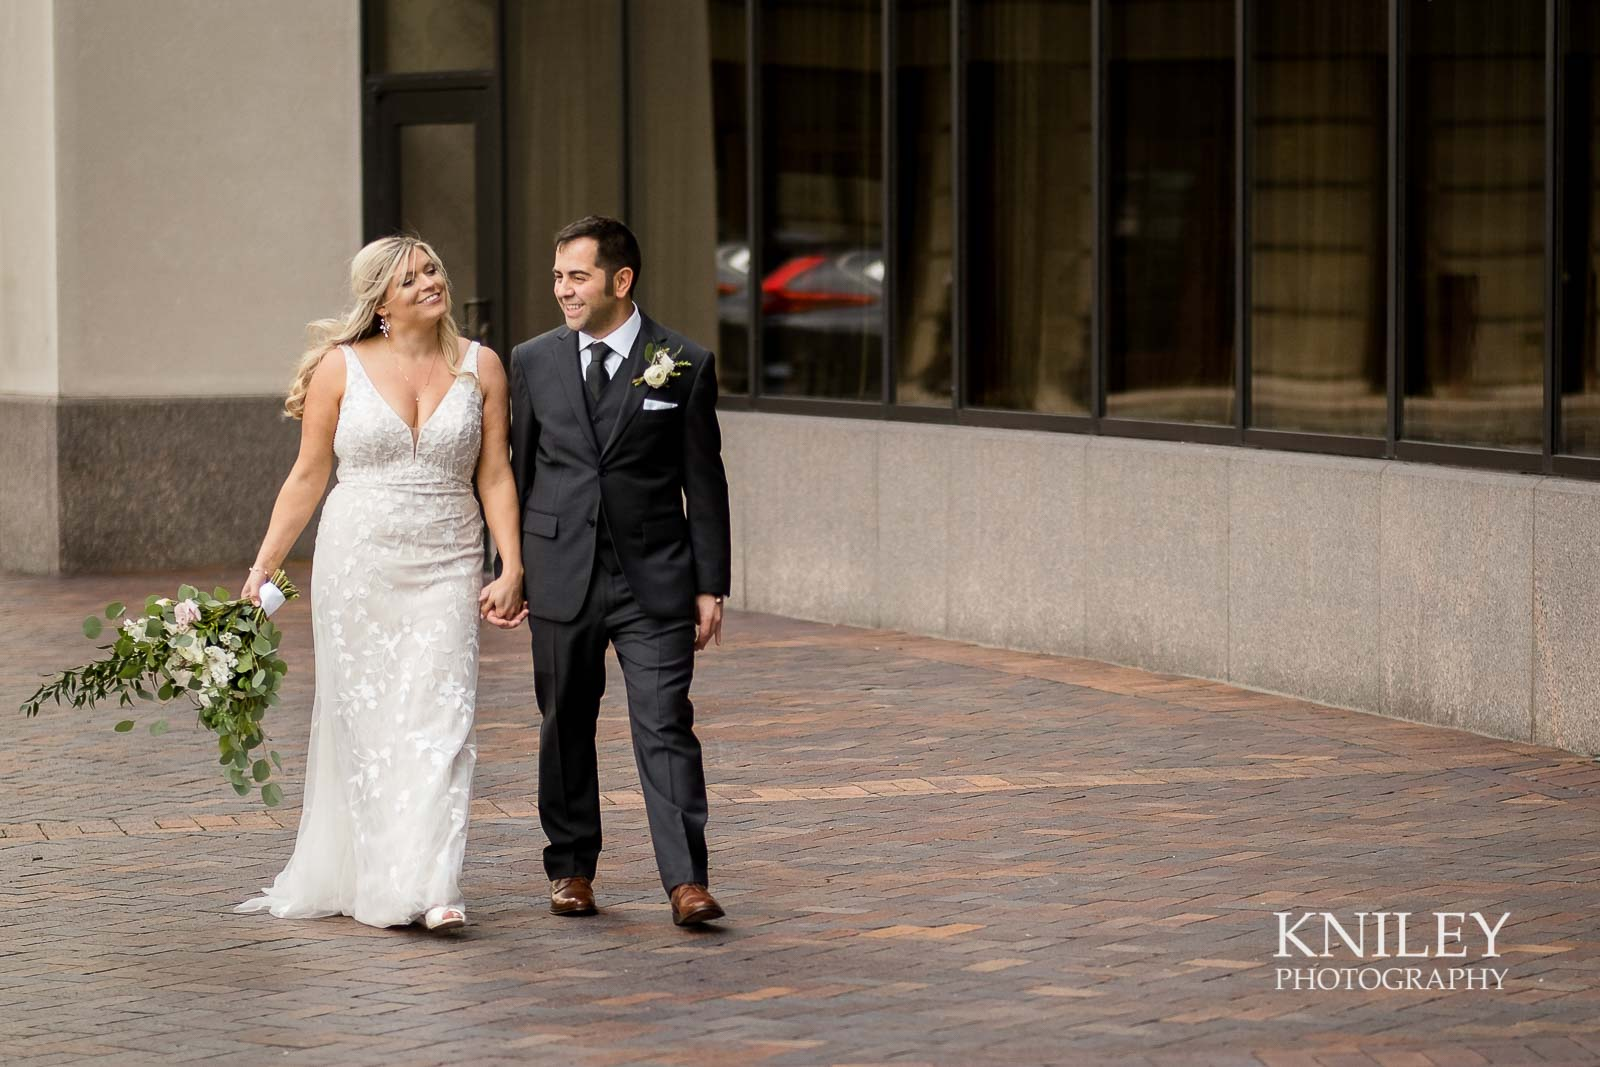 40-Max-of-Eastman-Wedding-and-Reception-Rochester-NY-Kniley-Photography.jpg